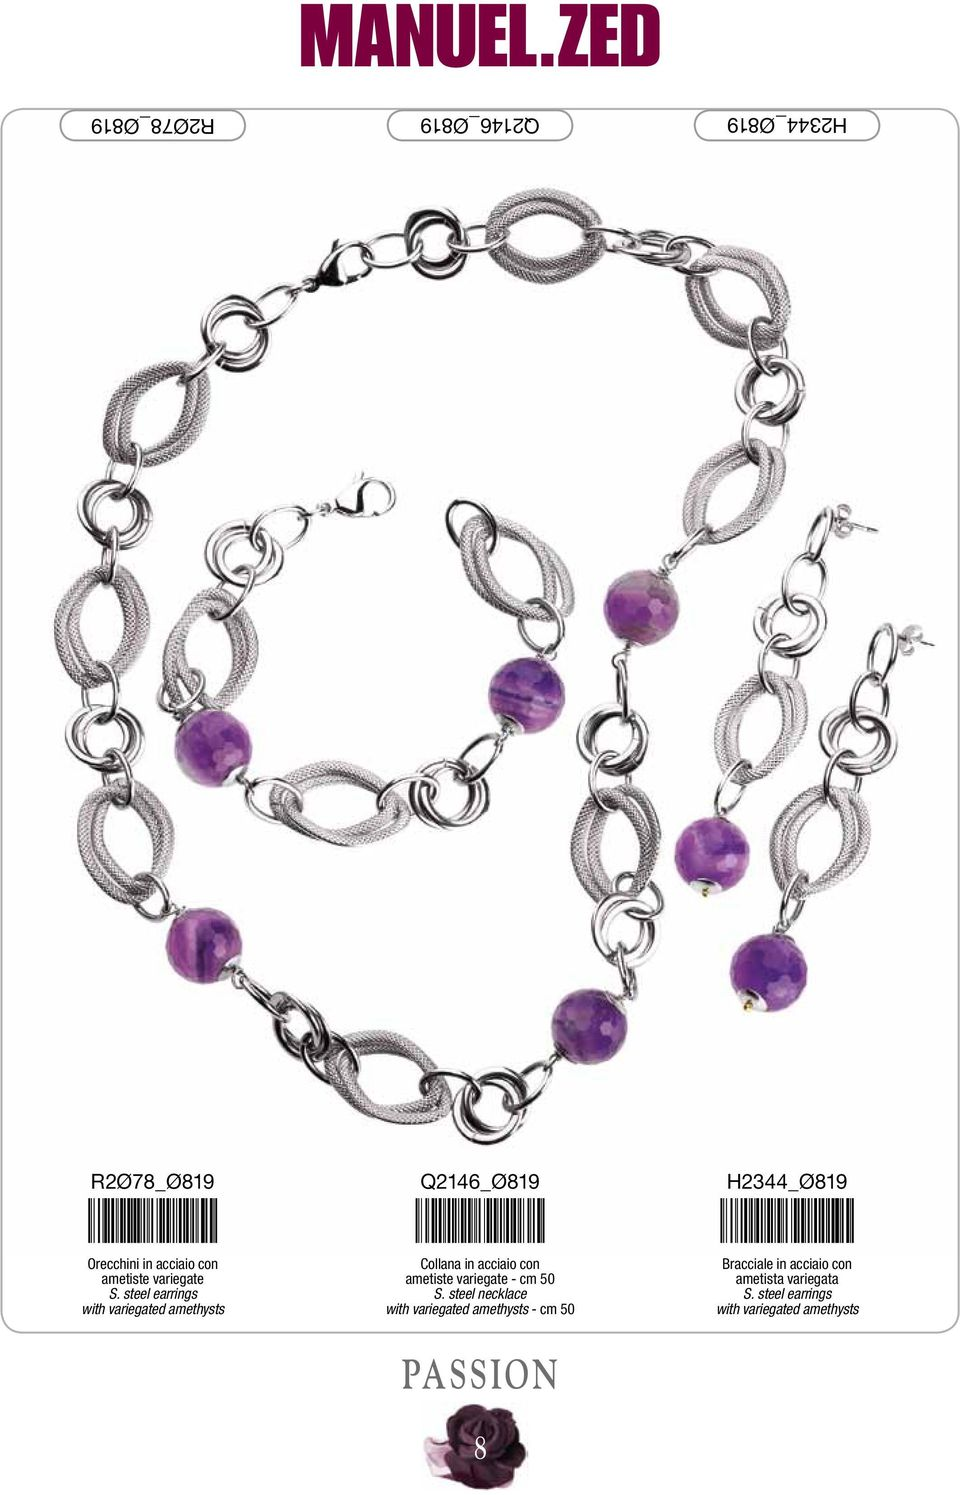 steel earrings with variegated amethysts Collana in acciaio con ametiste variegate - cm